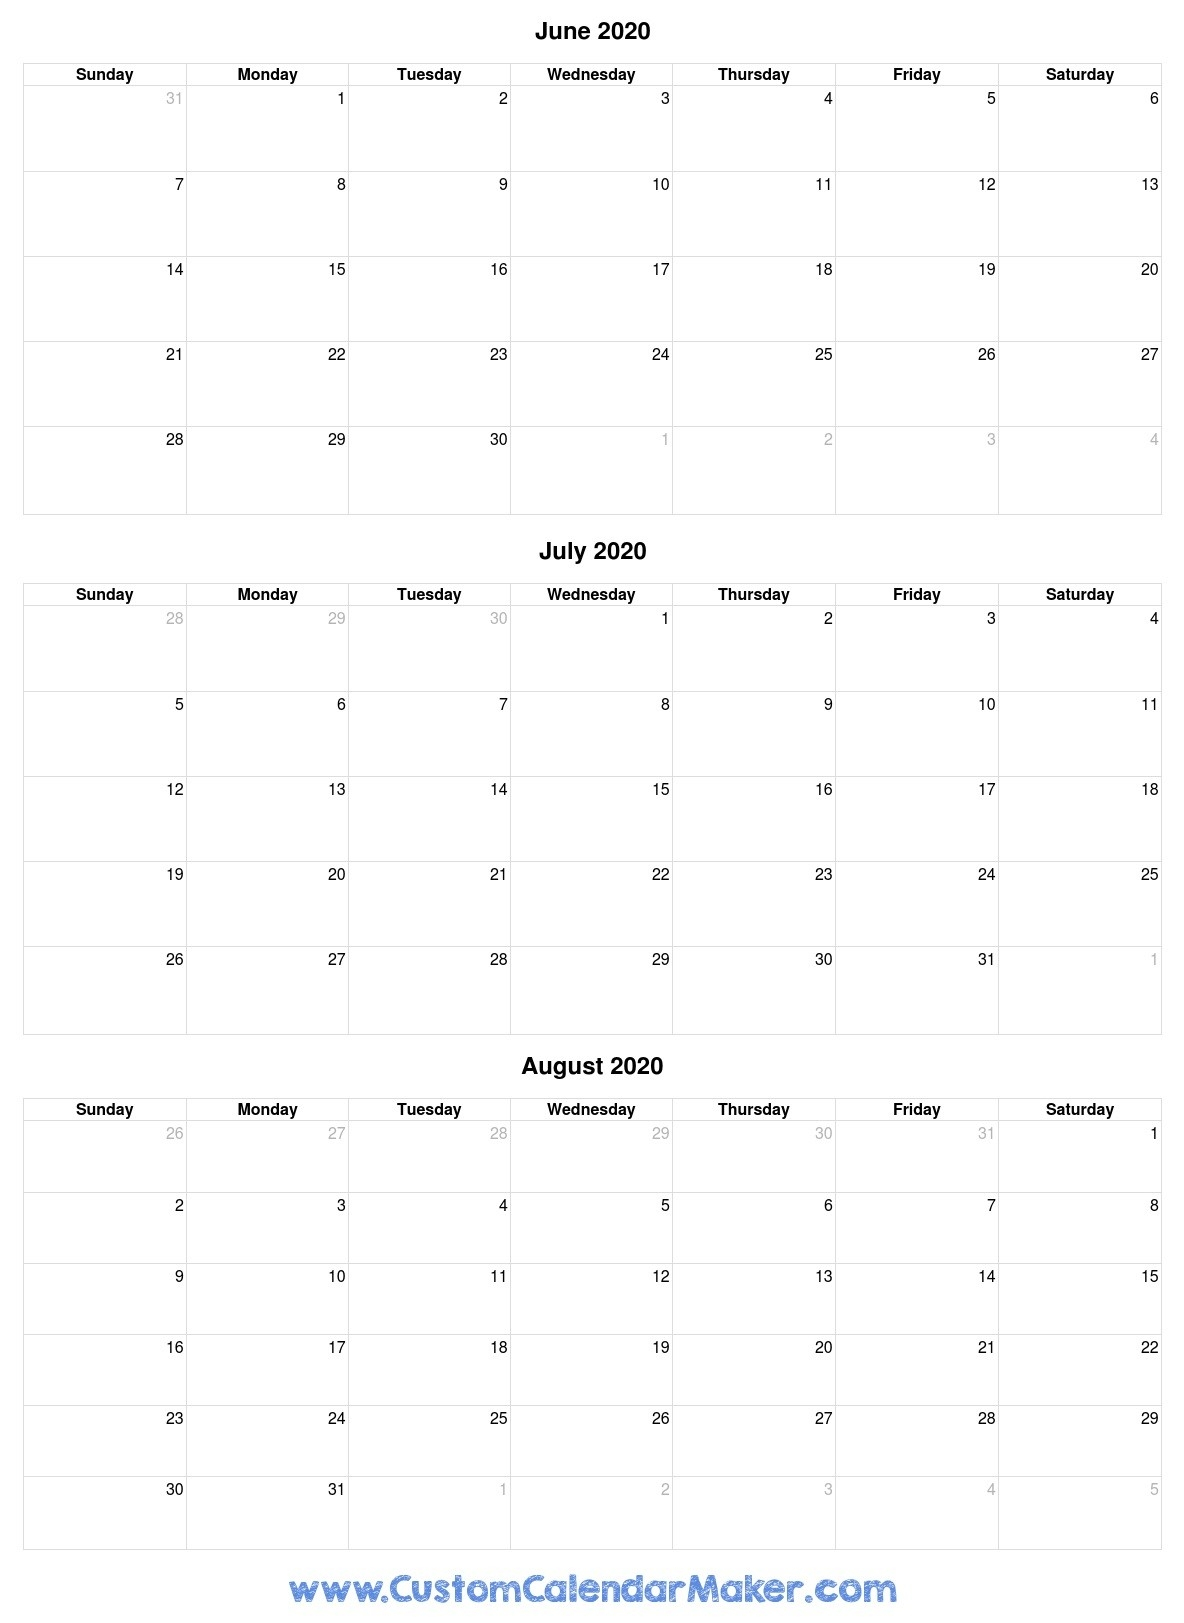 June To August 2020 Calendar-Blank Calendars June July And August 2020